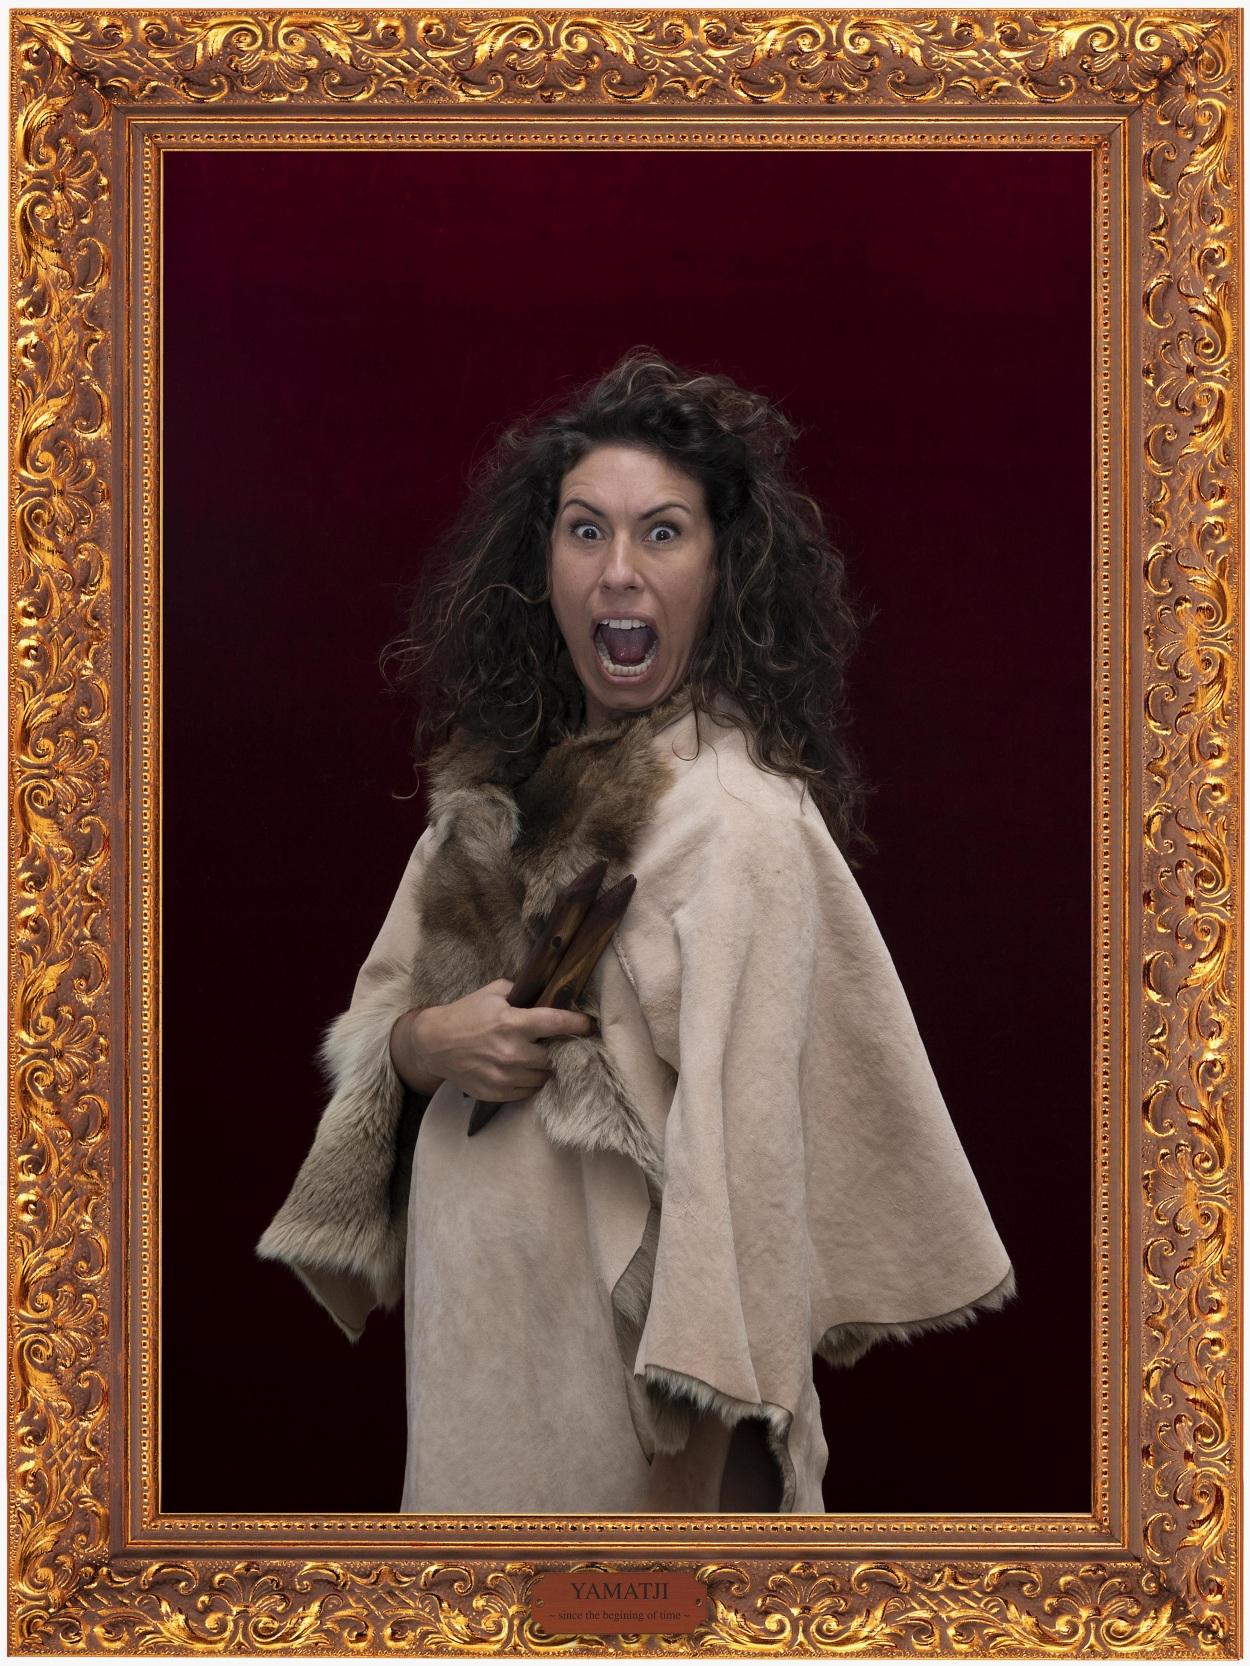 The image is a portrait of one of the artists, Nicole Monks who wears a skin/fur coat and holds in one hand two clapping sticks. She stares into the camera with eyes wide and mouth open as if she is screaming. The photo is in a gold frame with a plaque at the bottom which reads 'Yamatji - since the beginning of time'.